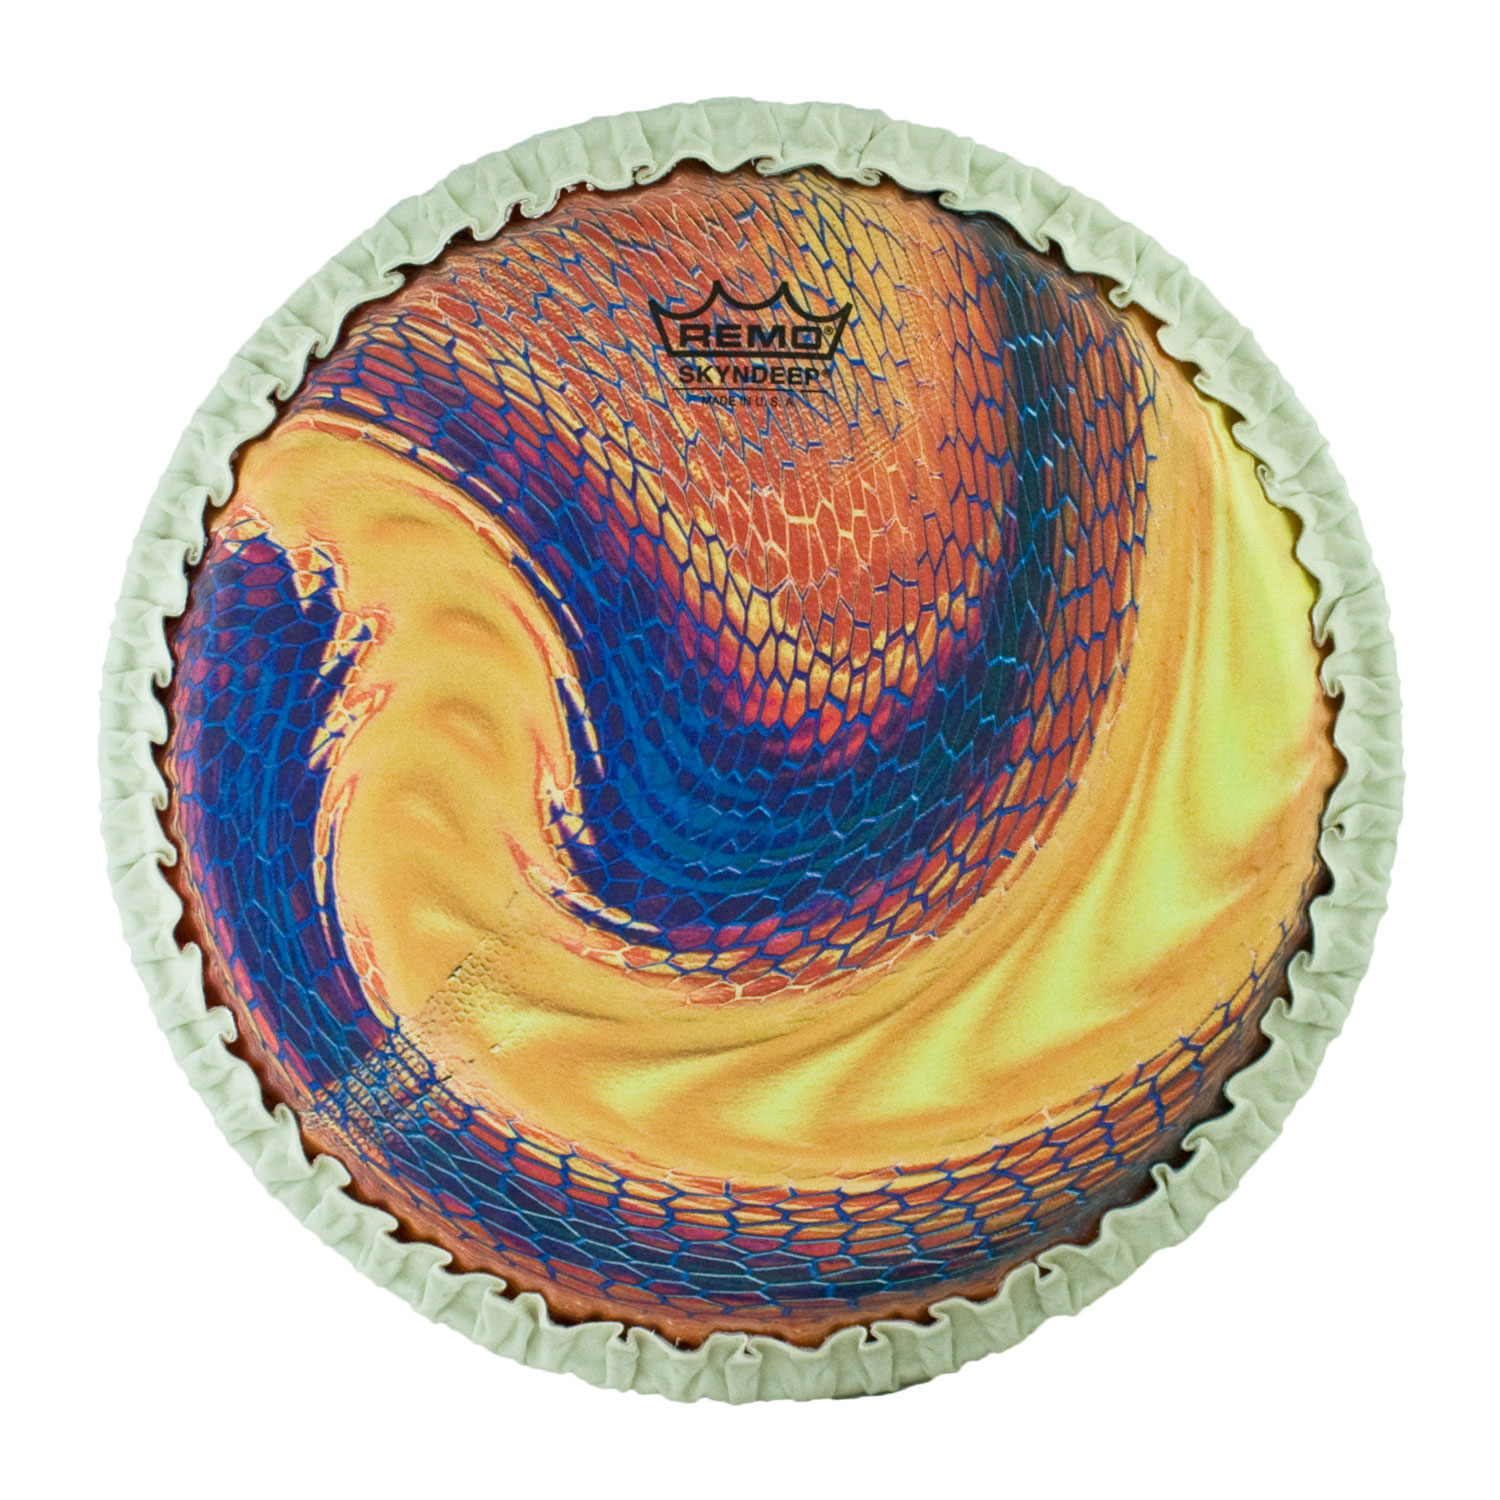 """Remo 7.15"""" Tucked Skyndeep Bongo Drum Head with Serpentine Day Graphic"""